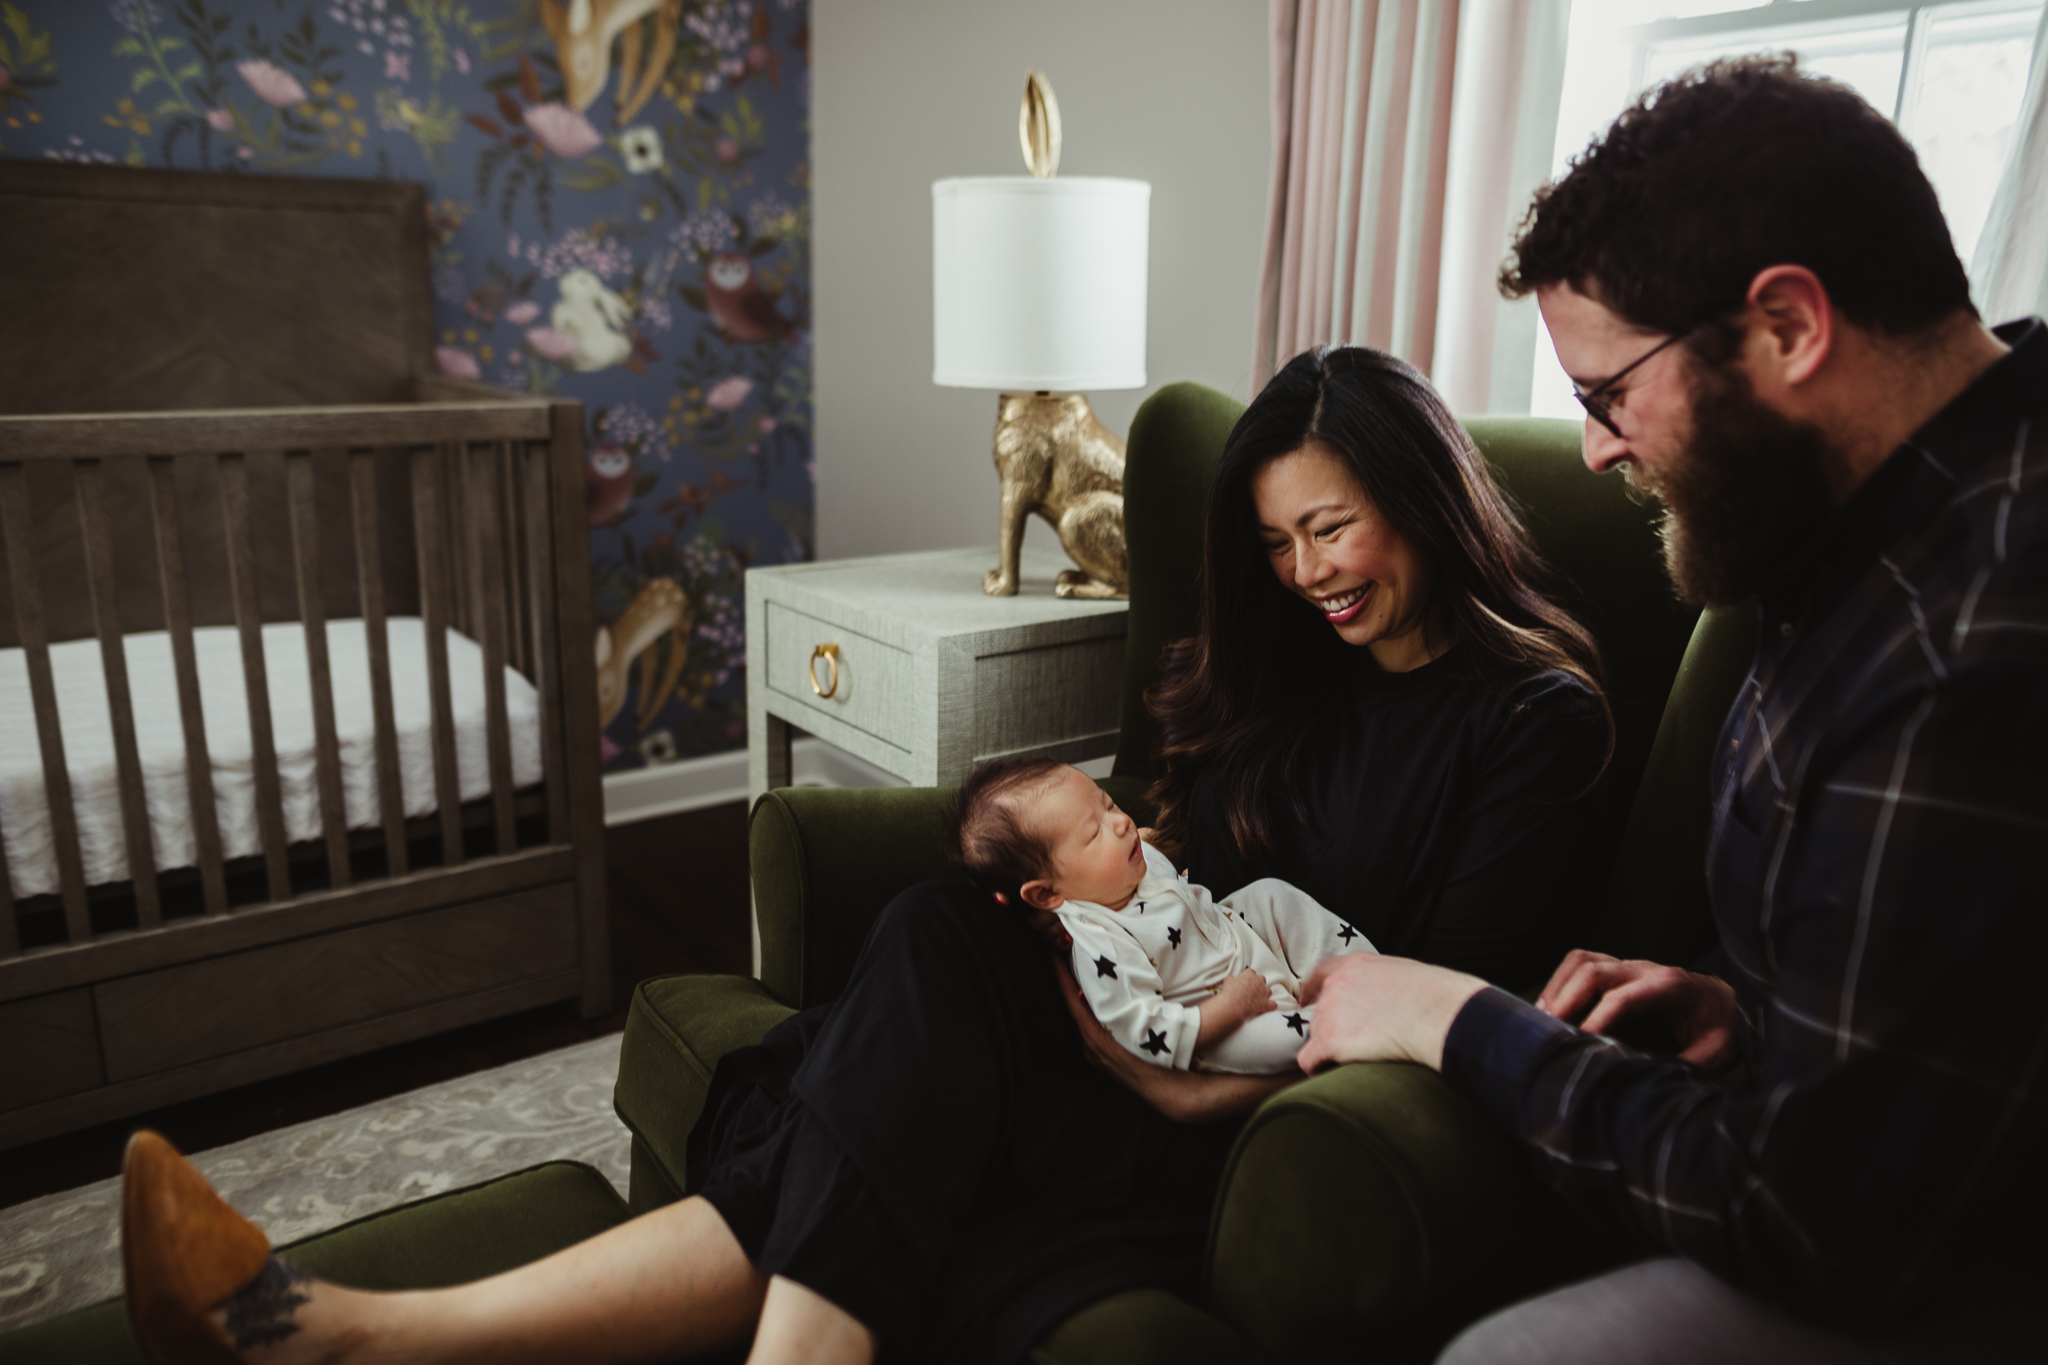 NEWEST ADDITION - An in-home newborn session.